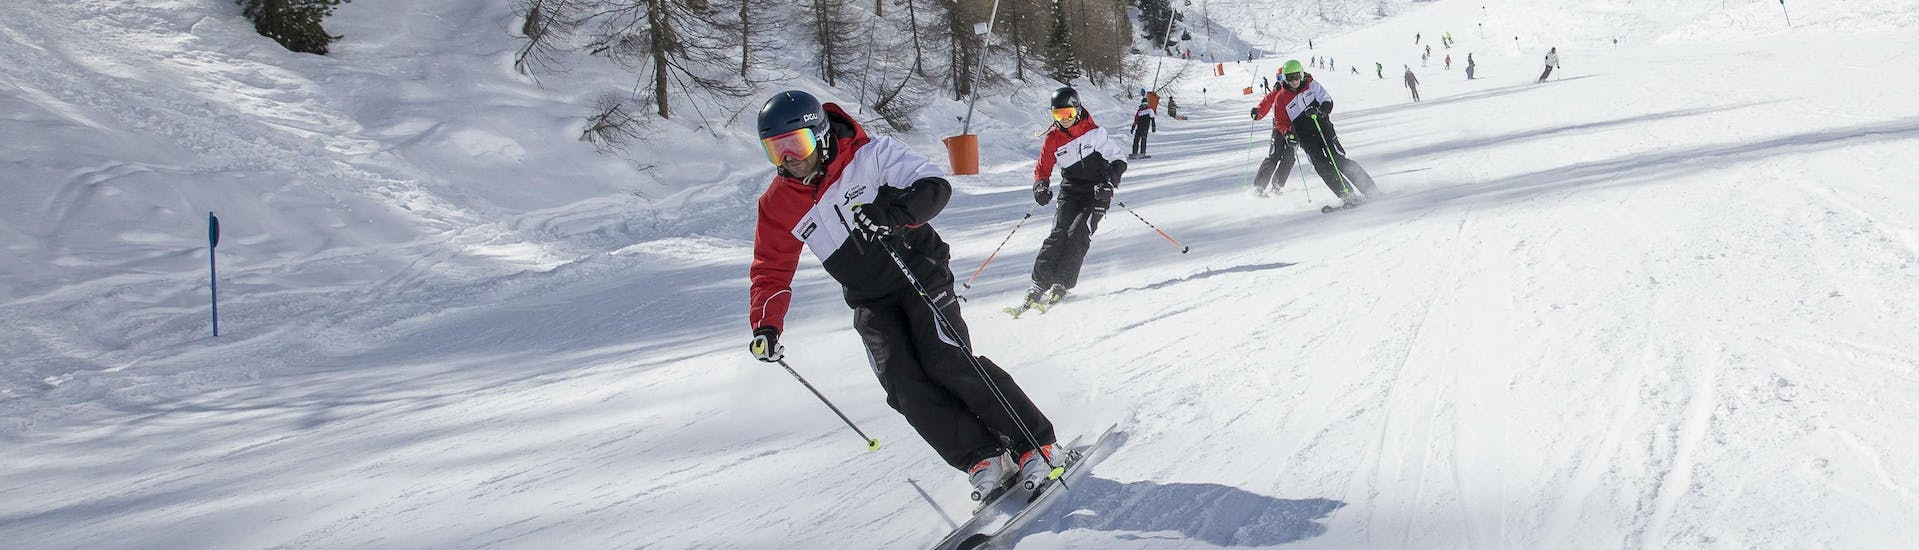 Adult Ski Lessons for Advanced Skiers